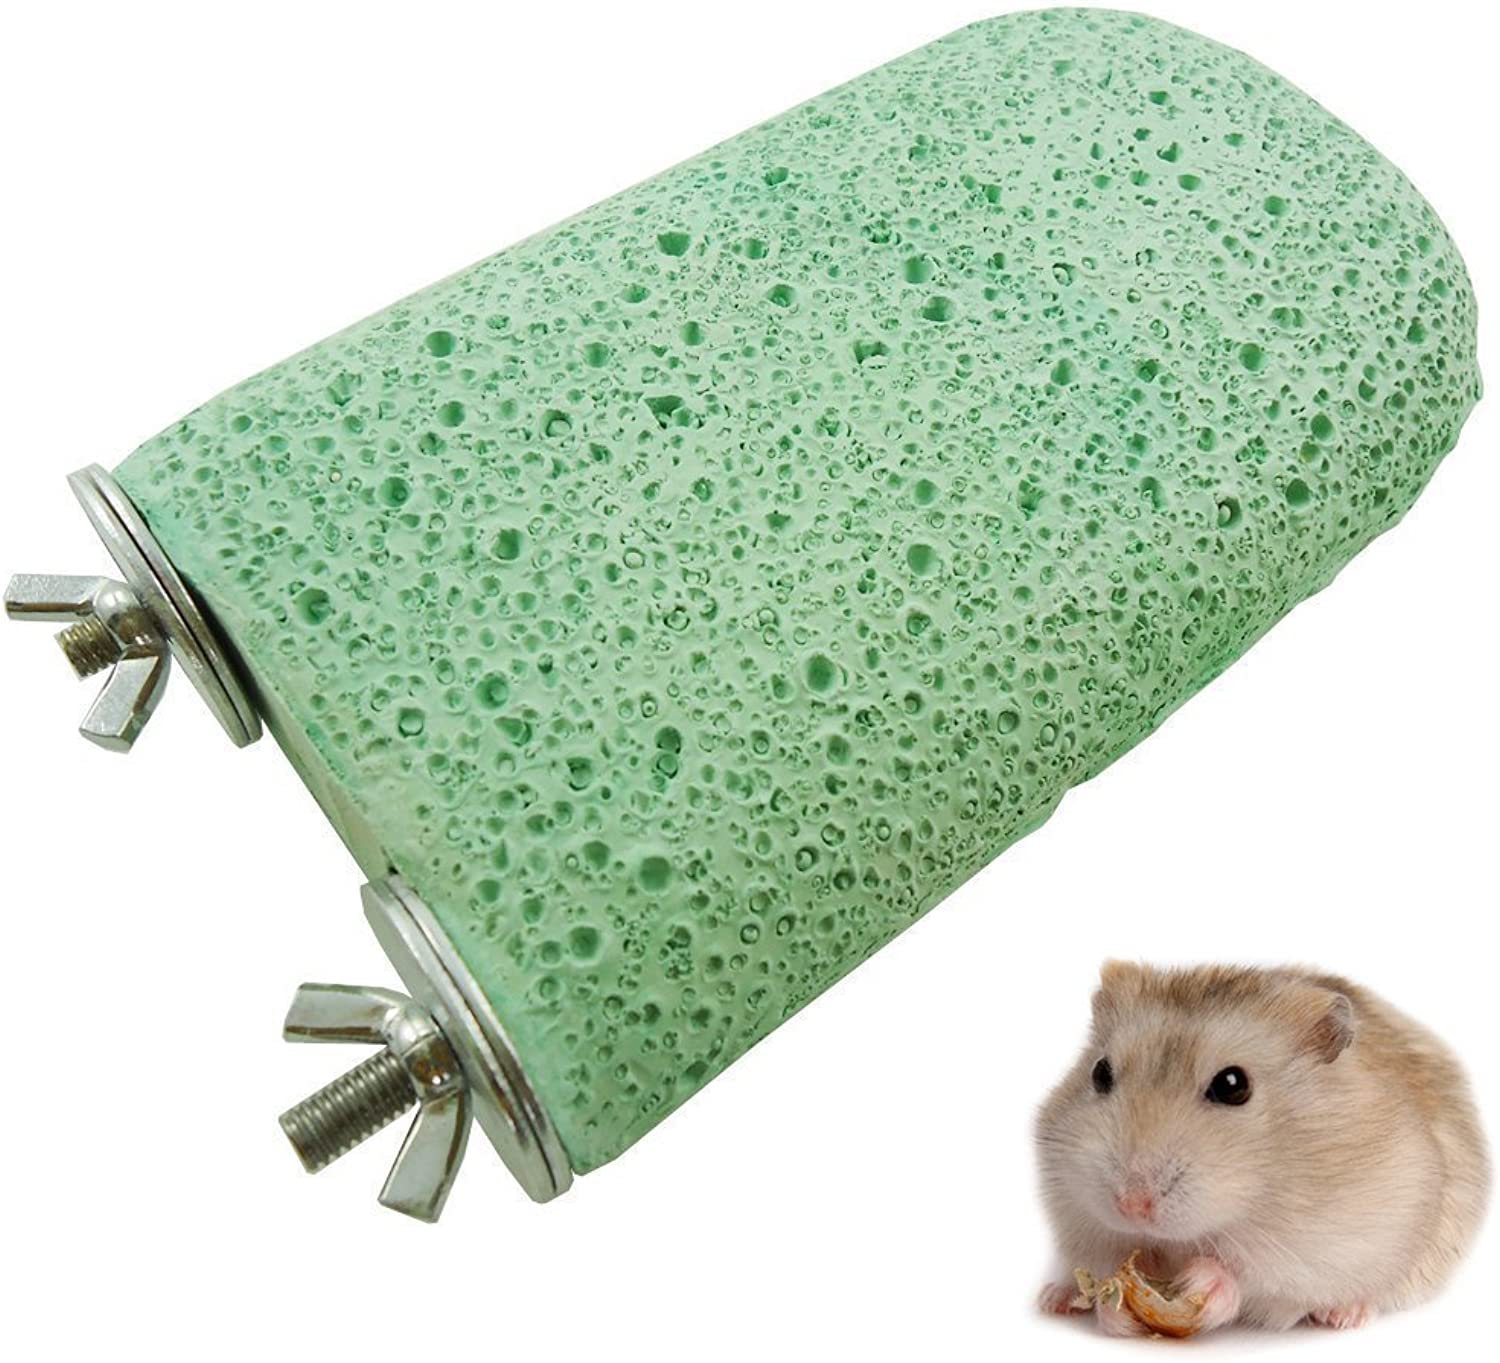 7inch Teeth Grinding Chew Toy, Small Animals Mouse Rabbit Square Hamster Bird Chew Toys Grinding Molar Stones Large Lava Ledge (Green)